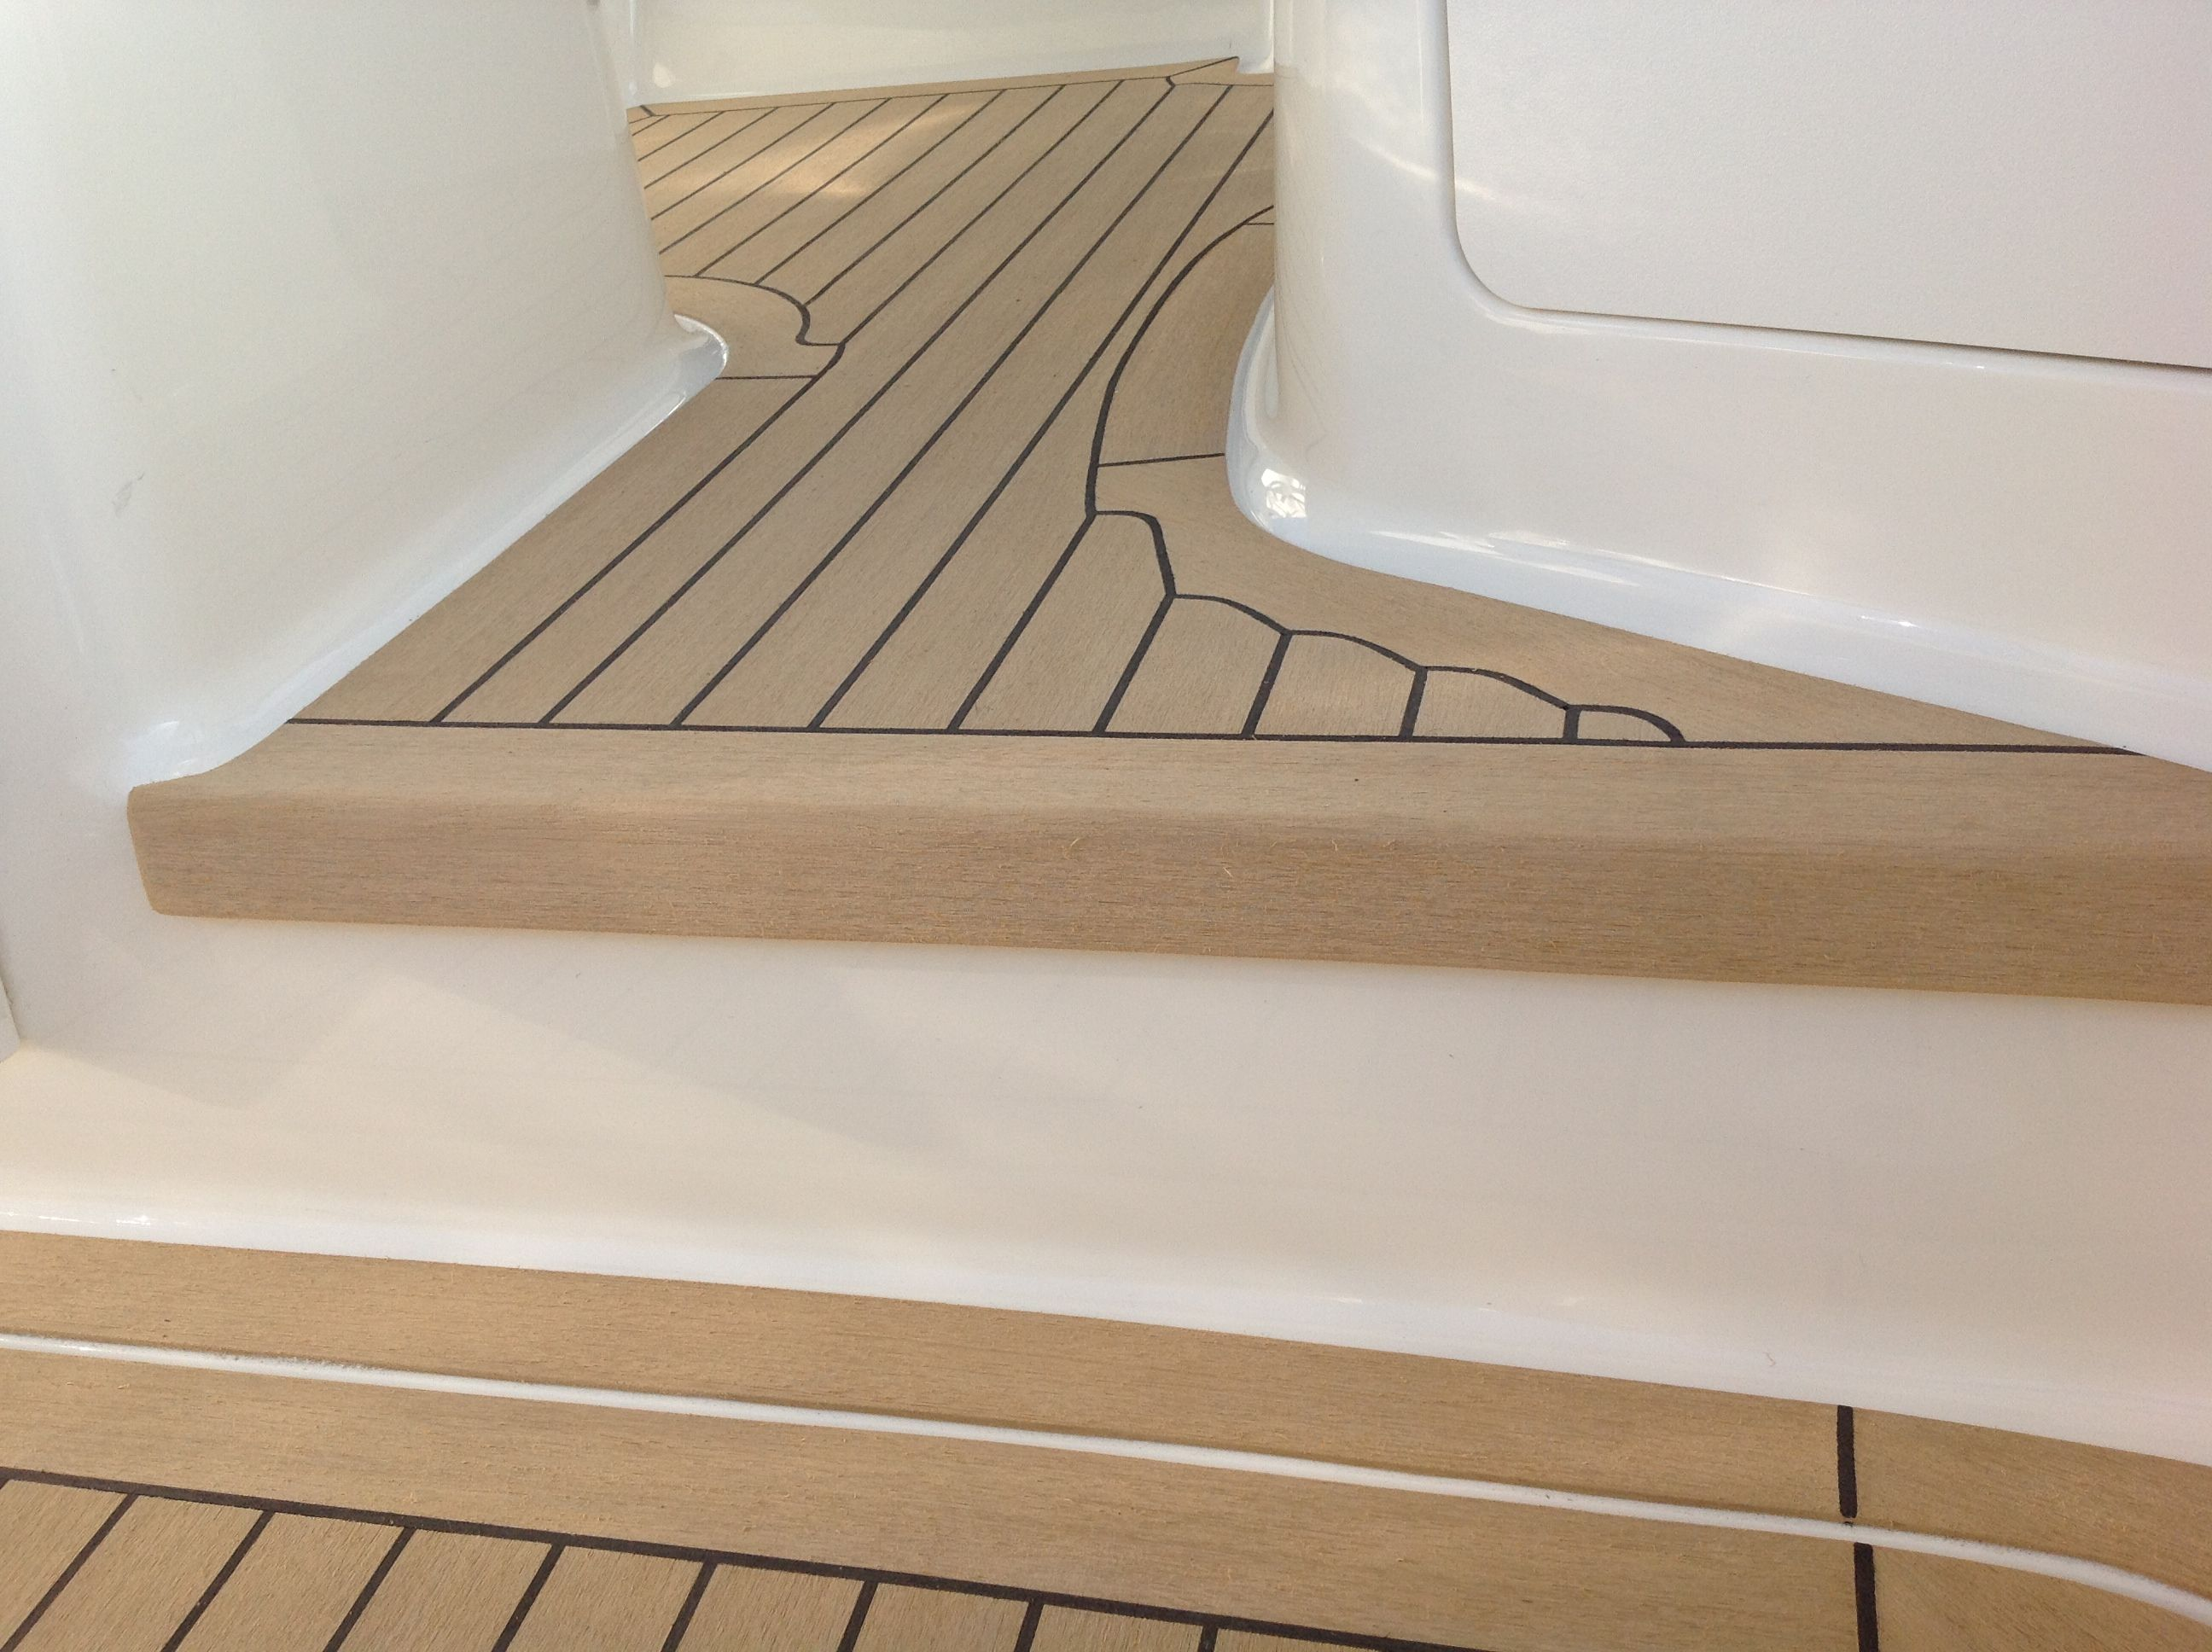 Best Synthetic Treads For Spiral Staircase Teak Deck Boat 640 x 480